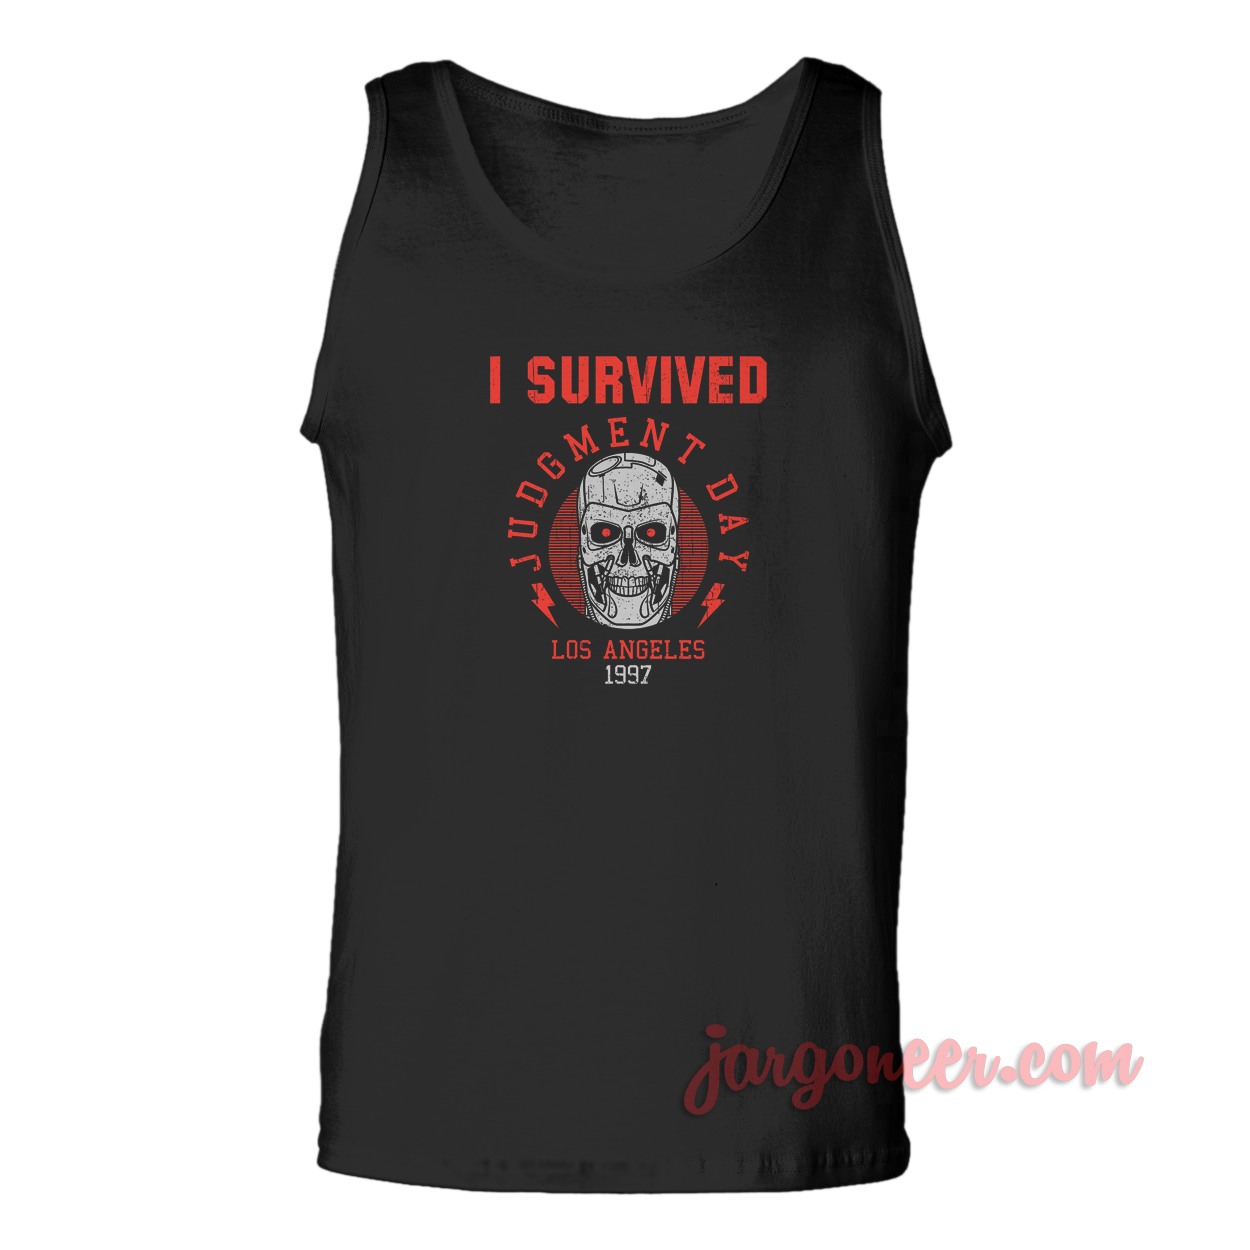 I Survived Judgment Day Unisex Adult Tank Top